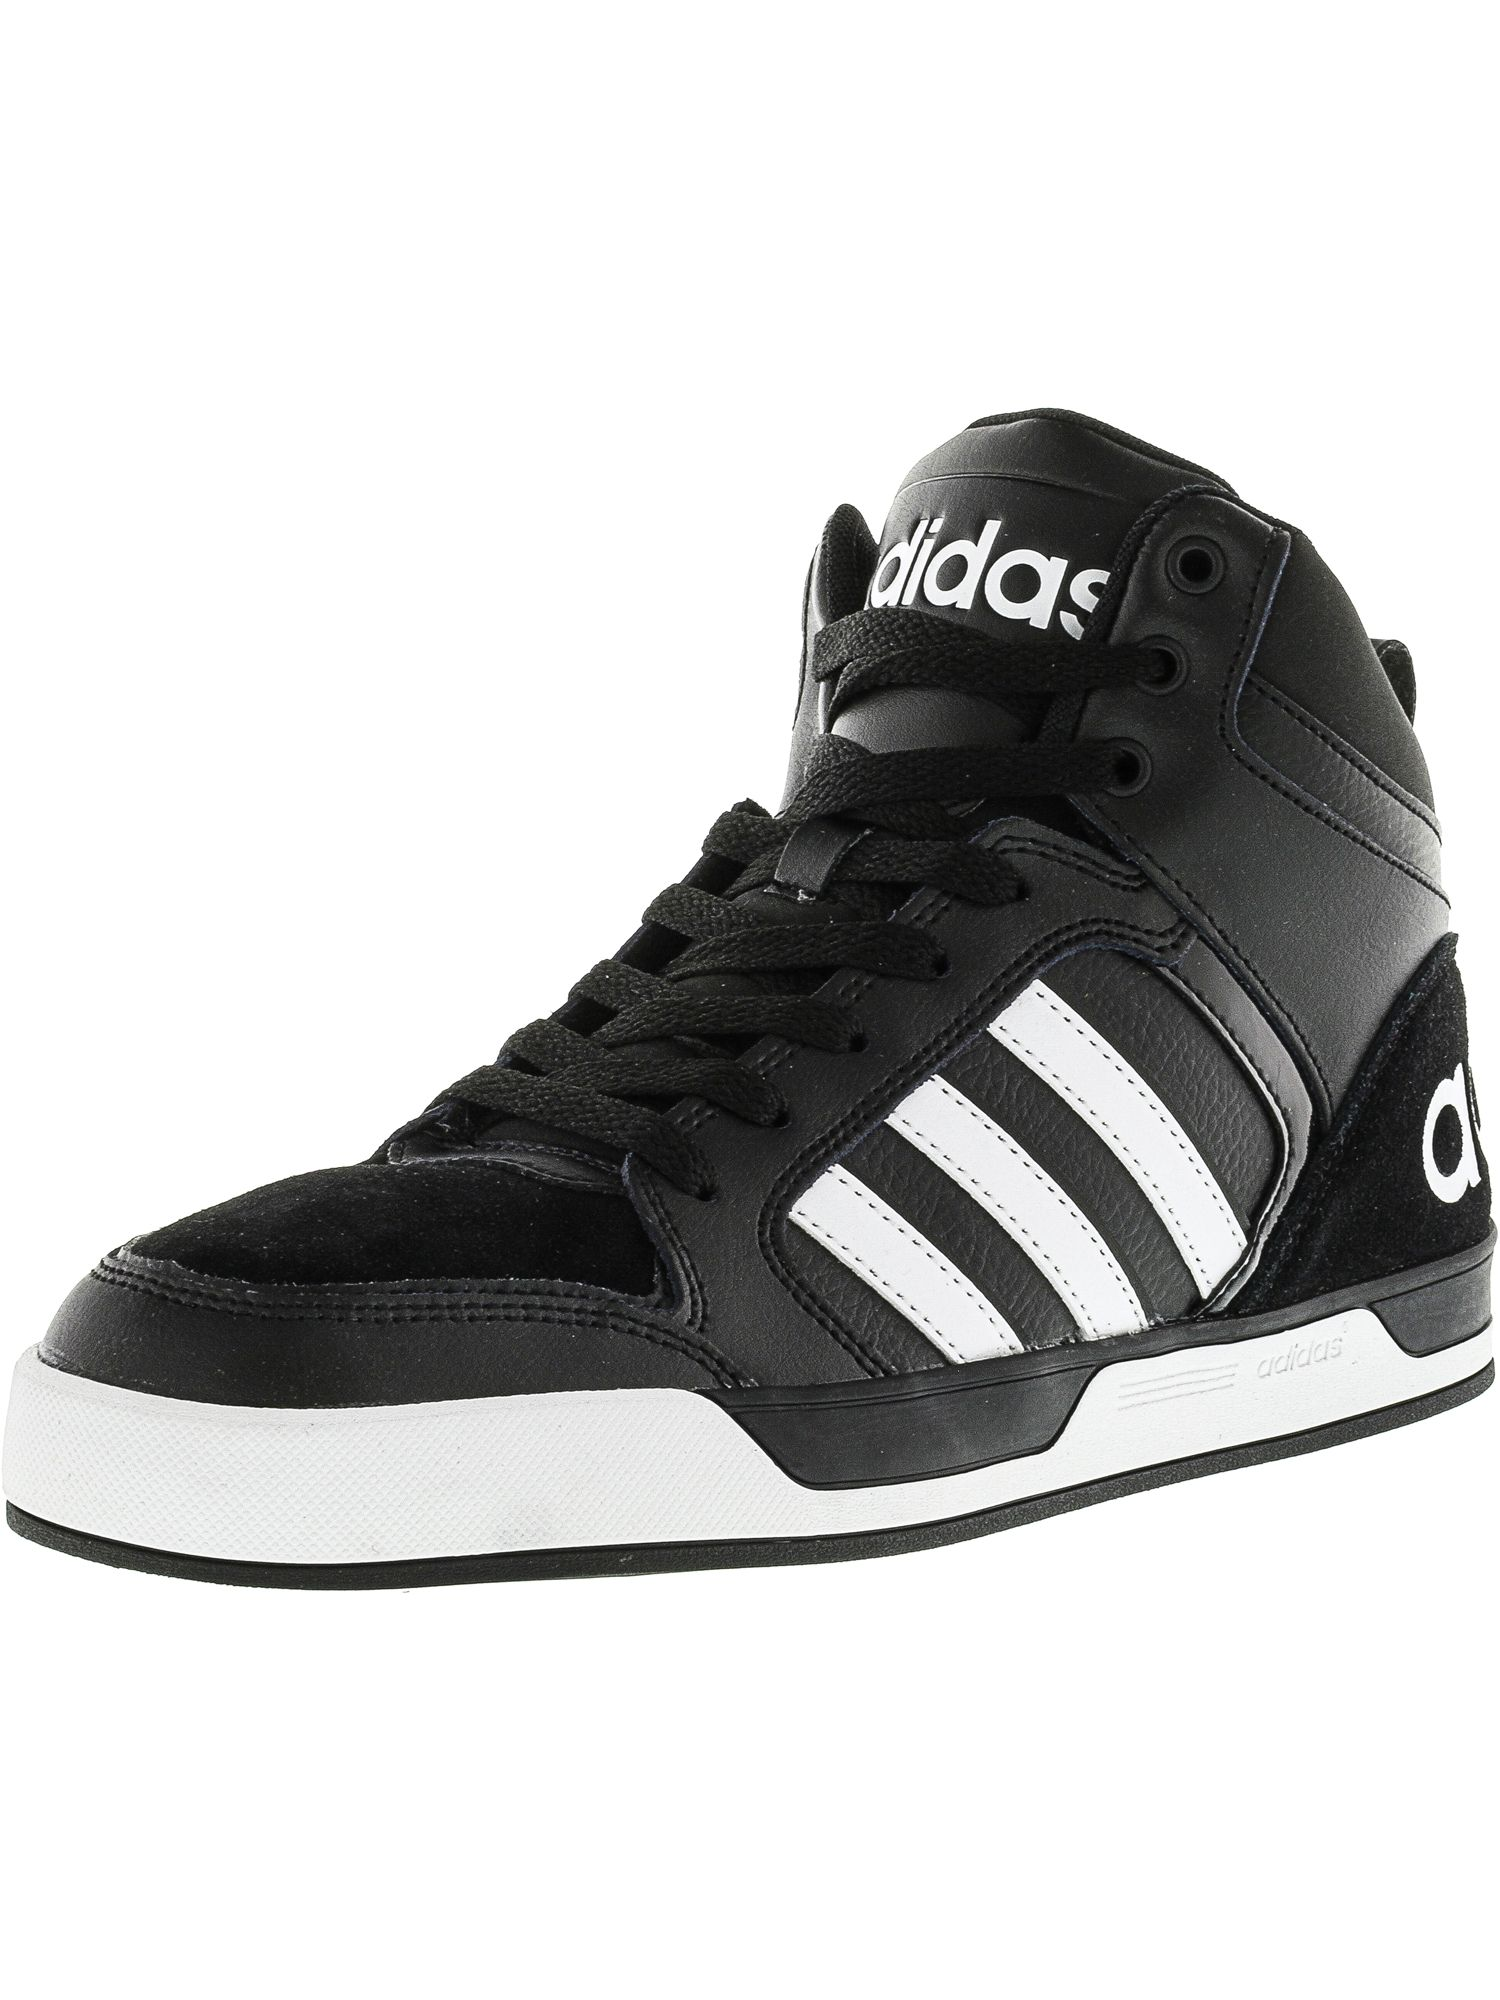 adidas basket top